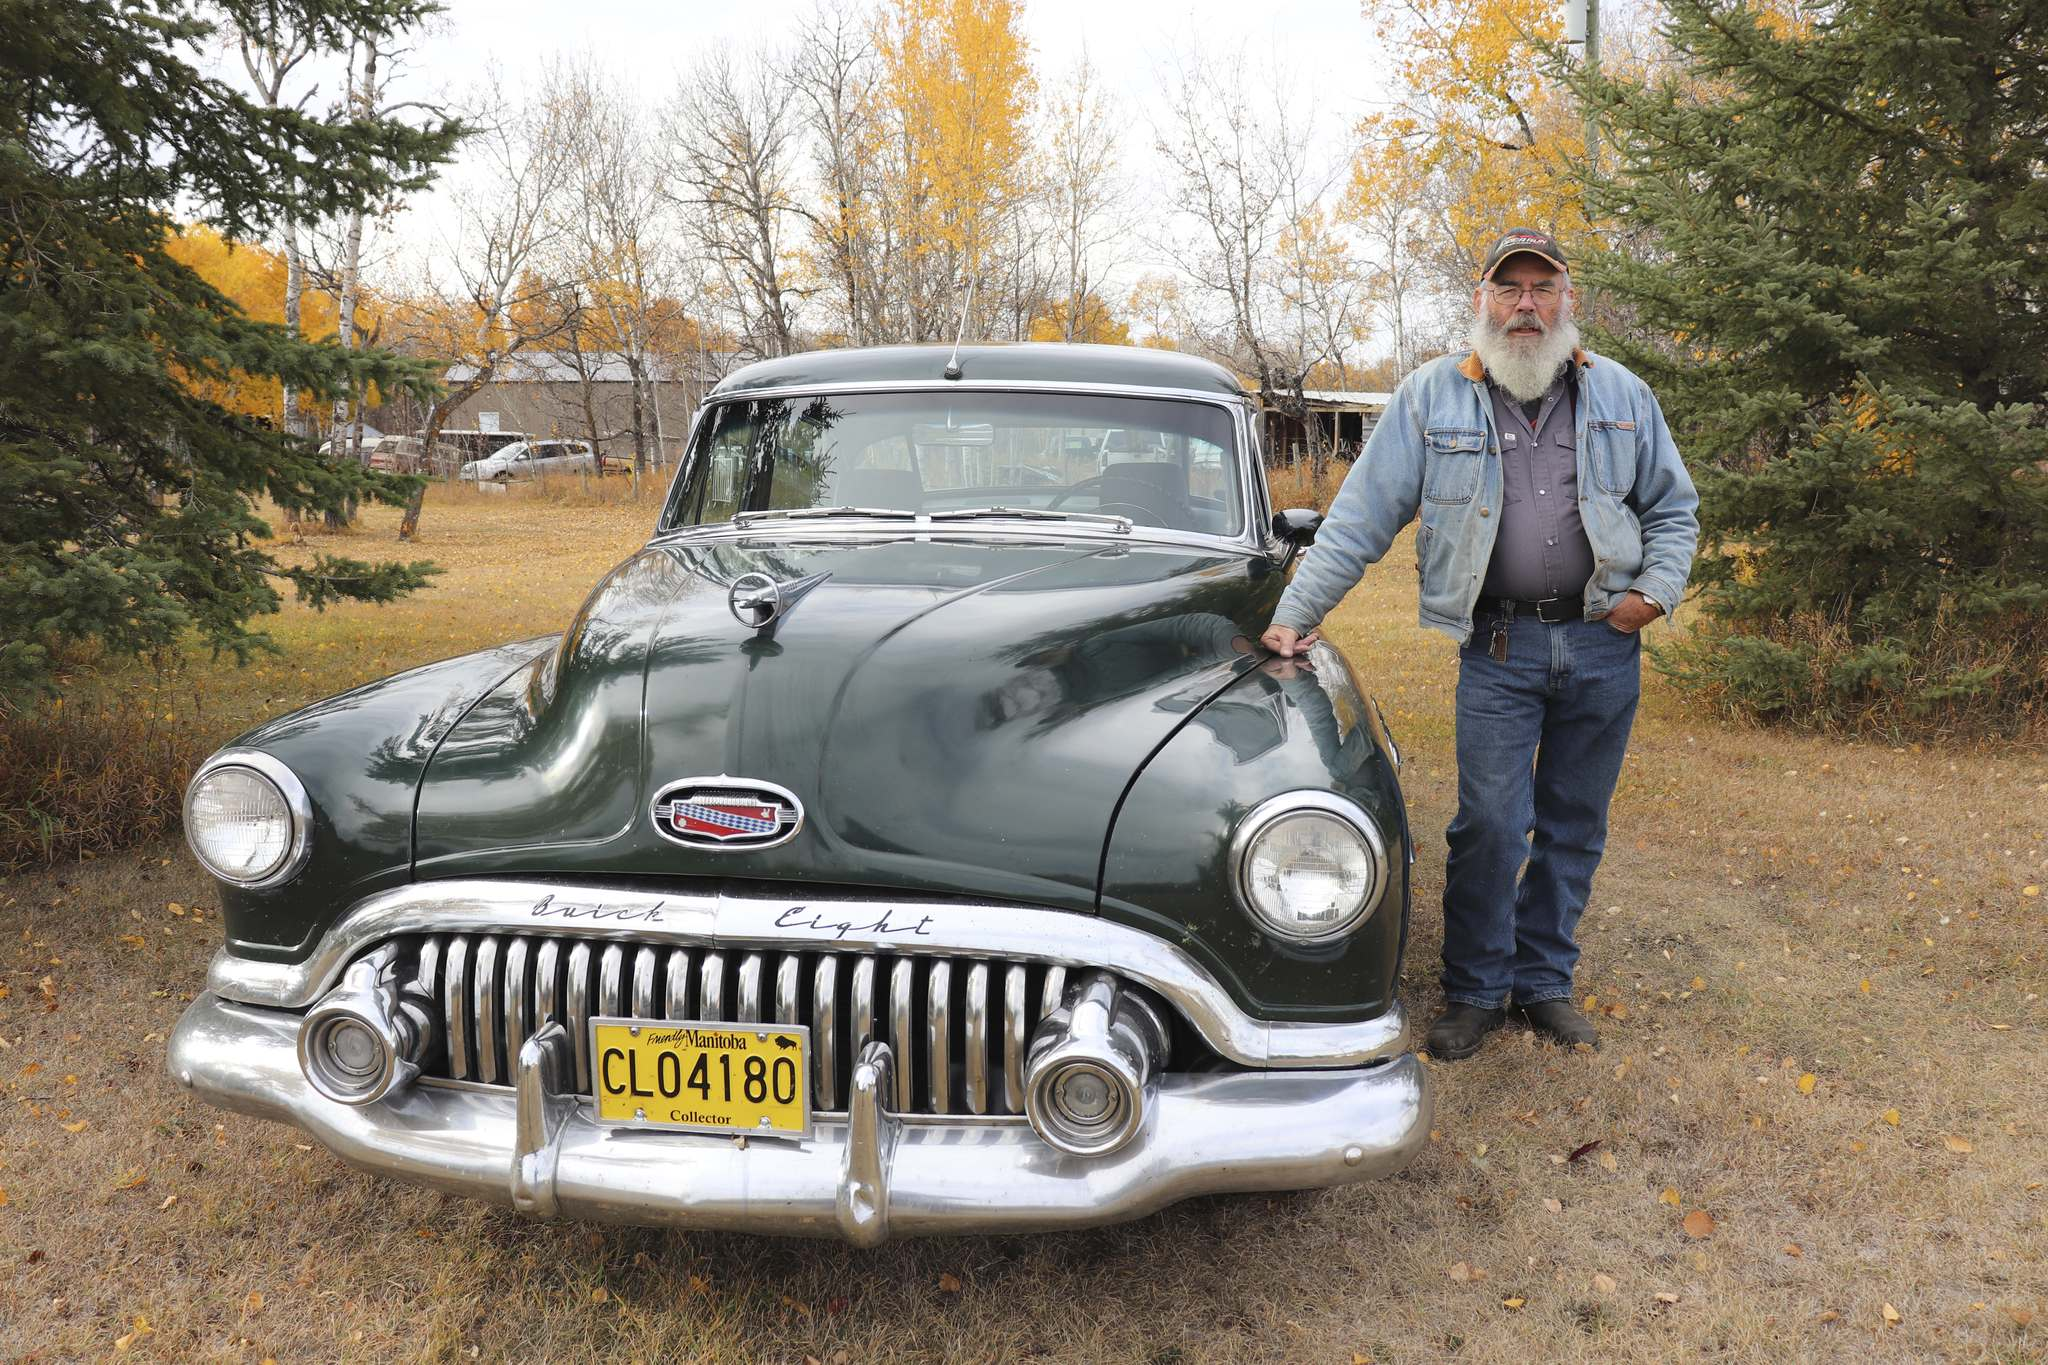 Jim Stewart poses for a photo next to his 1952 Buick Roadmaster this past Monday in the Rural Municipality of Whitehead. (Photos by Kyle Darbyson/The Brandon Sun)</p></p>